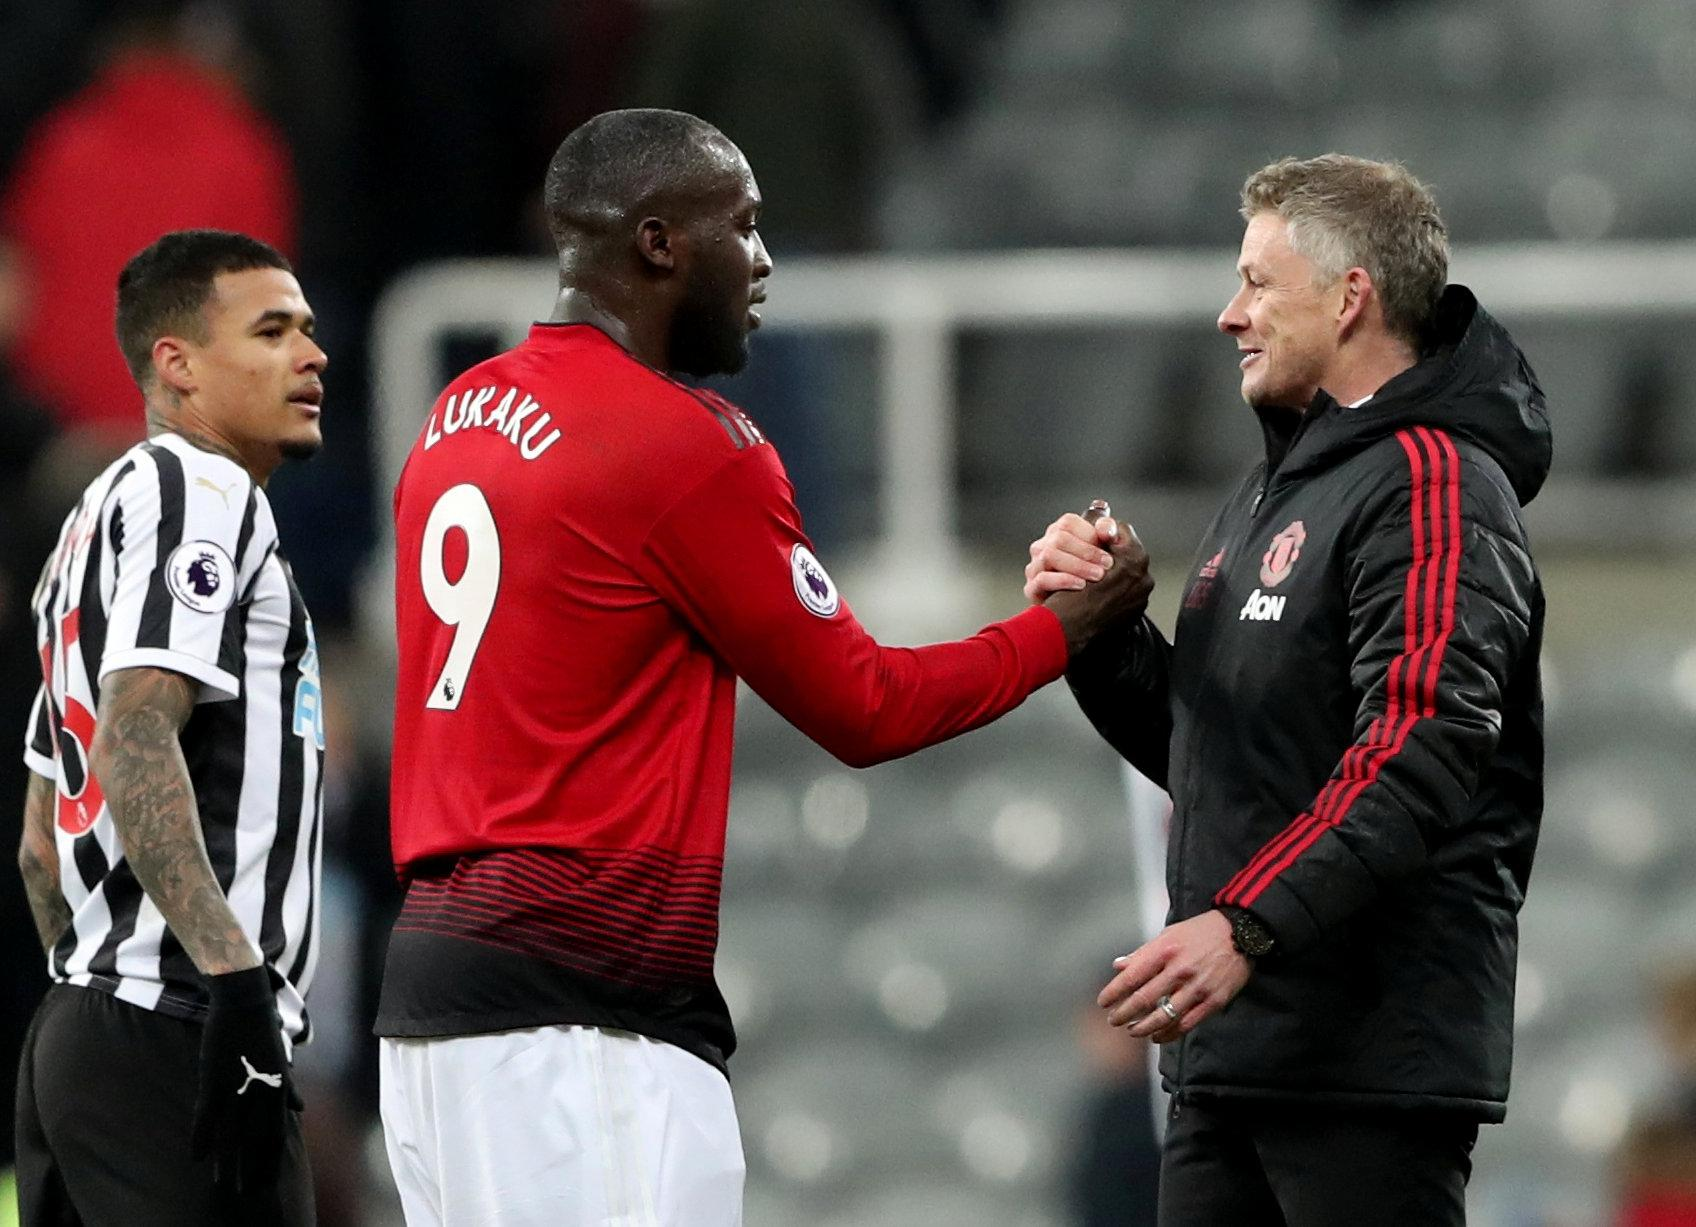 And Lukaku is enjoying being part of Ole Gunnar Solskjaer's squad chasing down Champions League spot